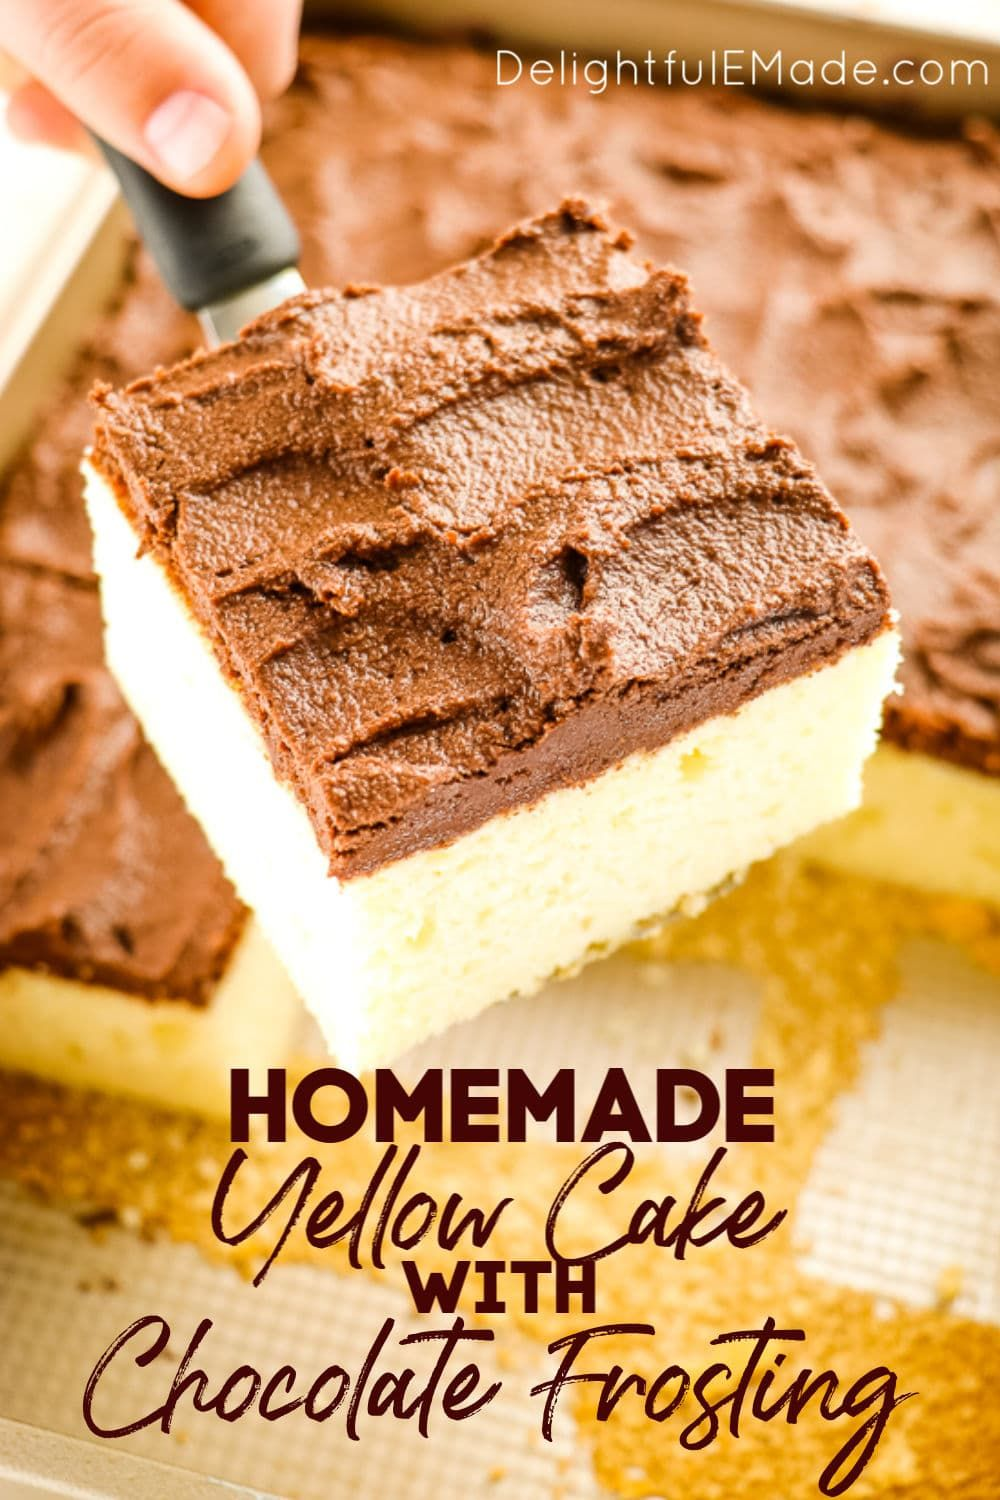 Buttermilk Sheet Cake The Best Yellow Cake With Chocolate Frosting In 2020 Chocolate Frosting Recipes Easy Baking Recipes Chocolate Frosting